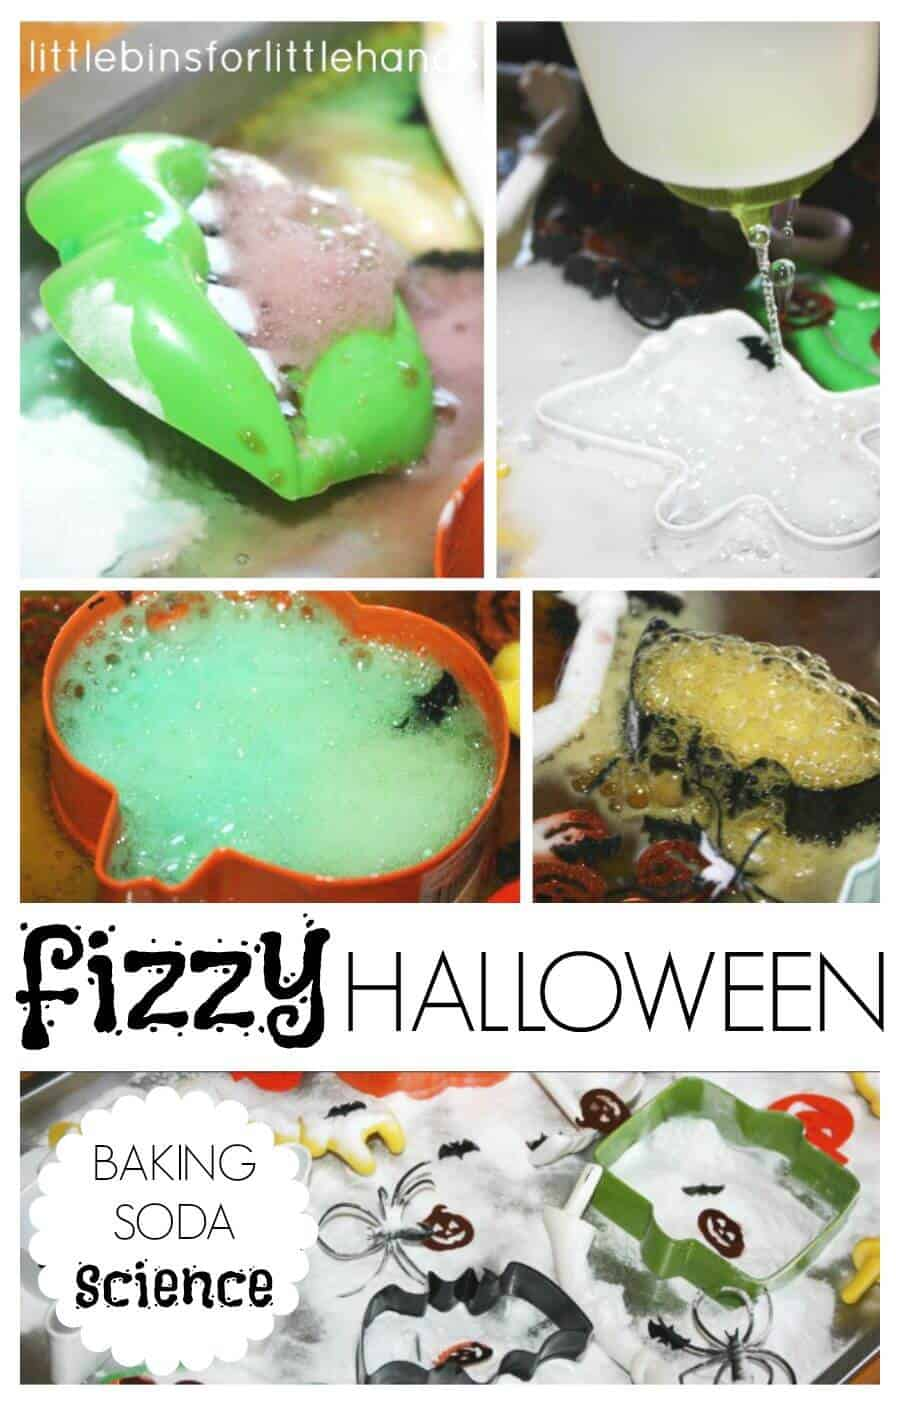 Fizzy halloween Science Baking Soda Vinegar Halloween Activity Experiment